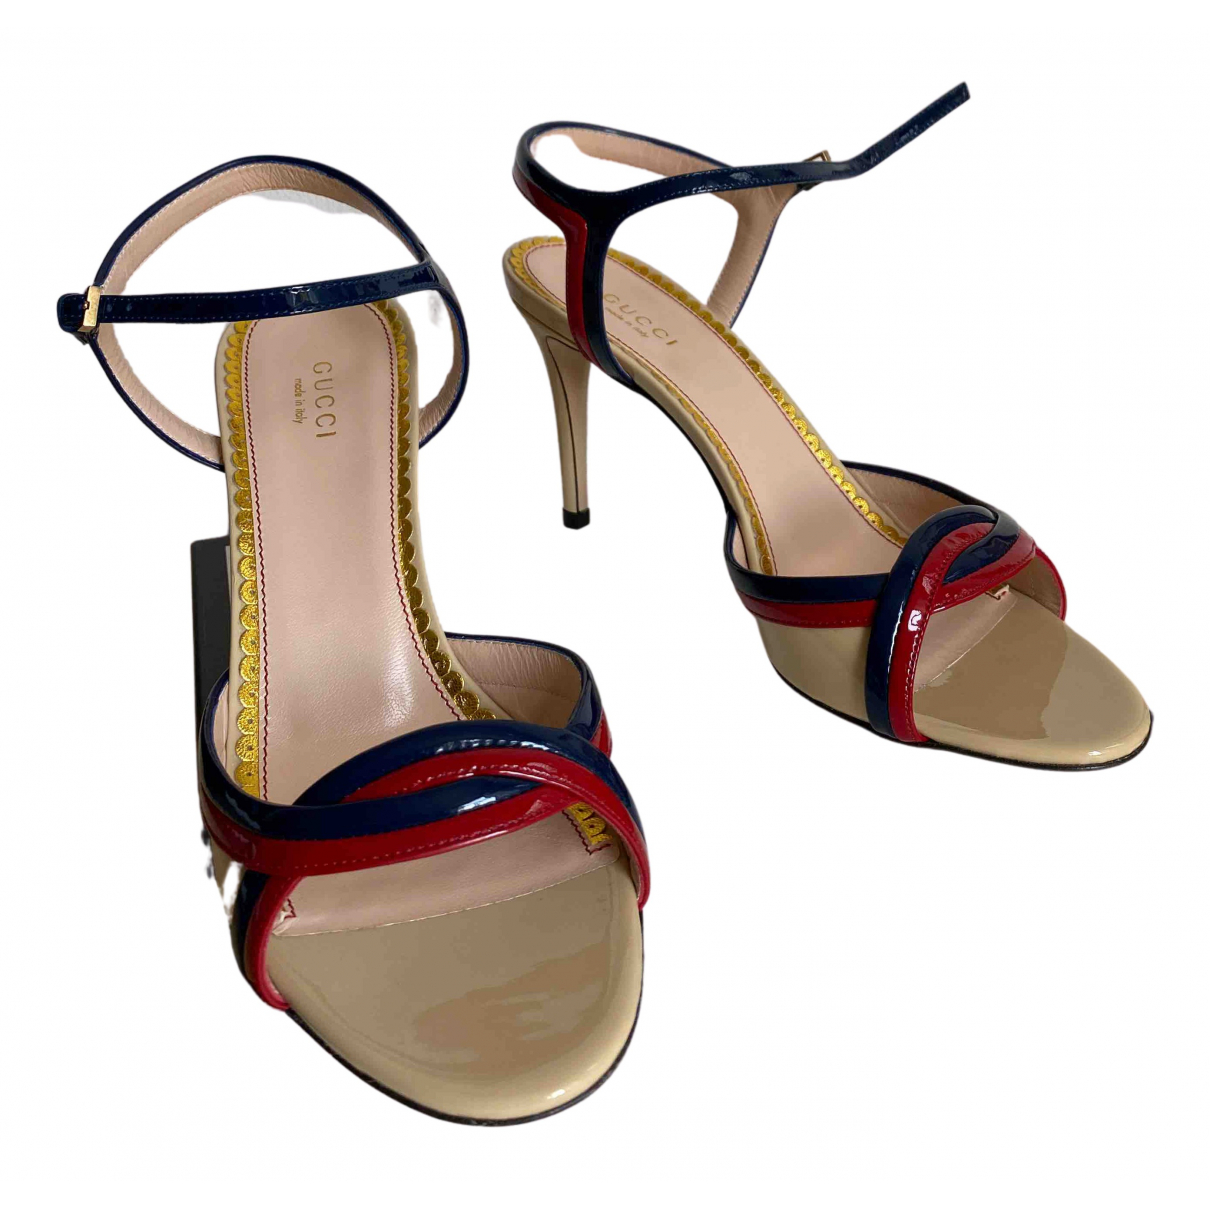 Gucci N Beige Patent leather Sandals for Women 38.5 EU